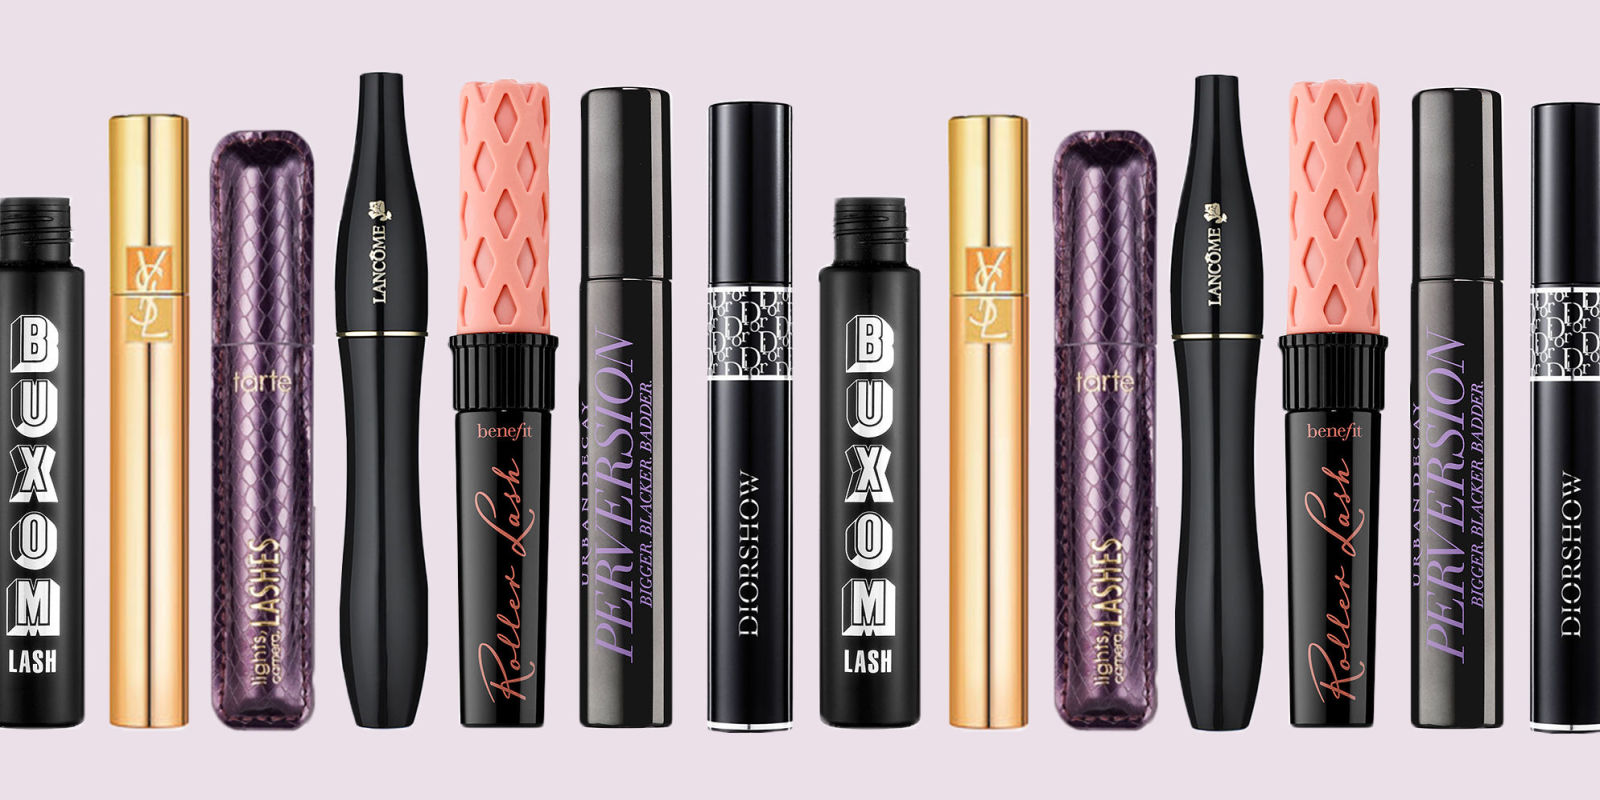 14 Best Mascara Reviews In 2017